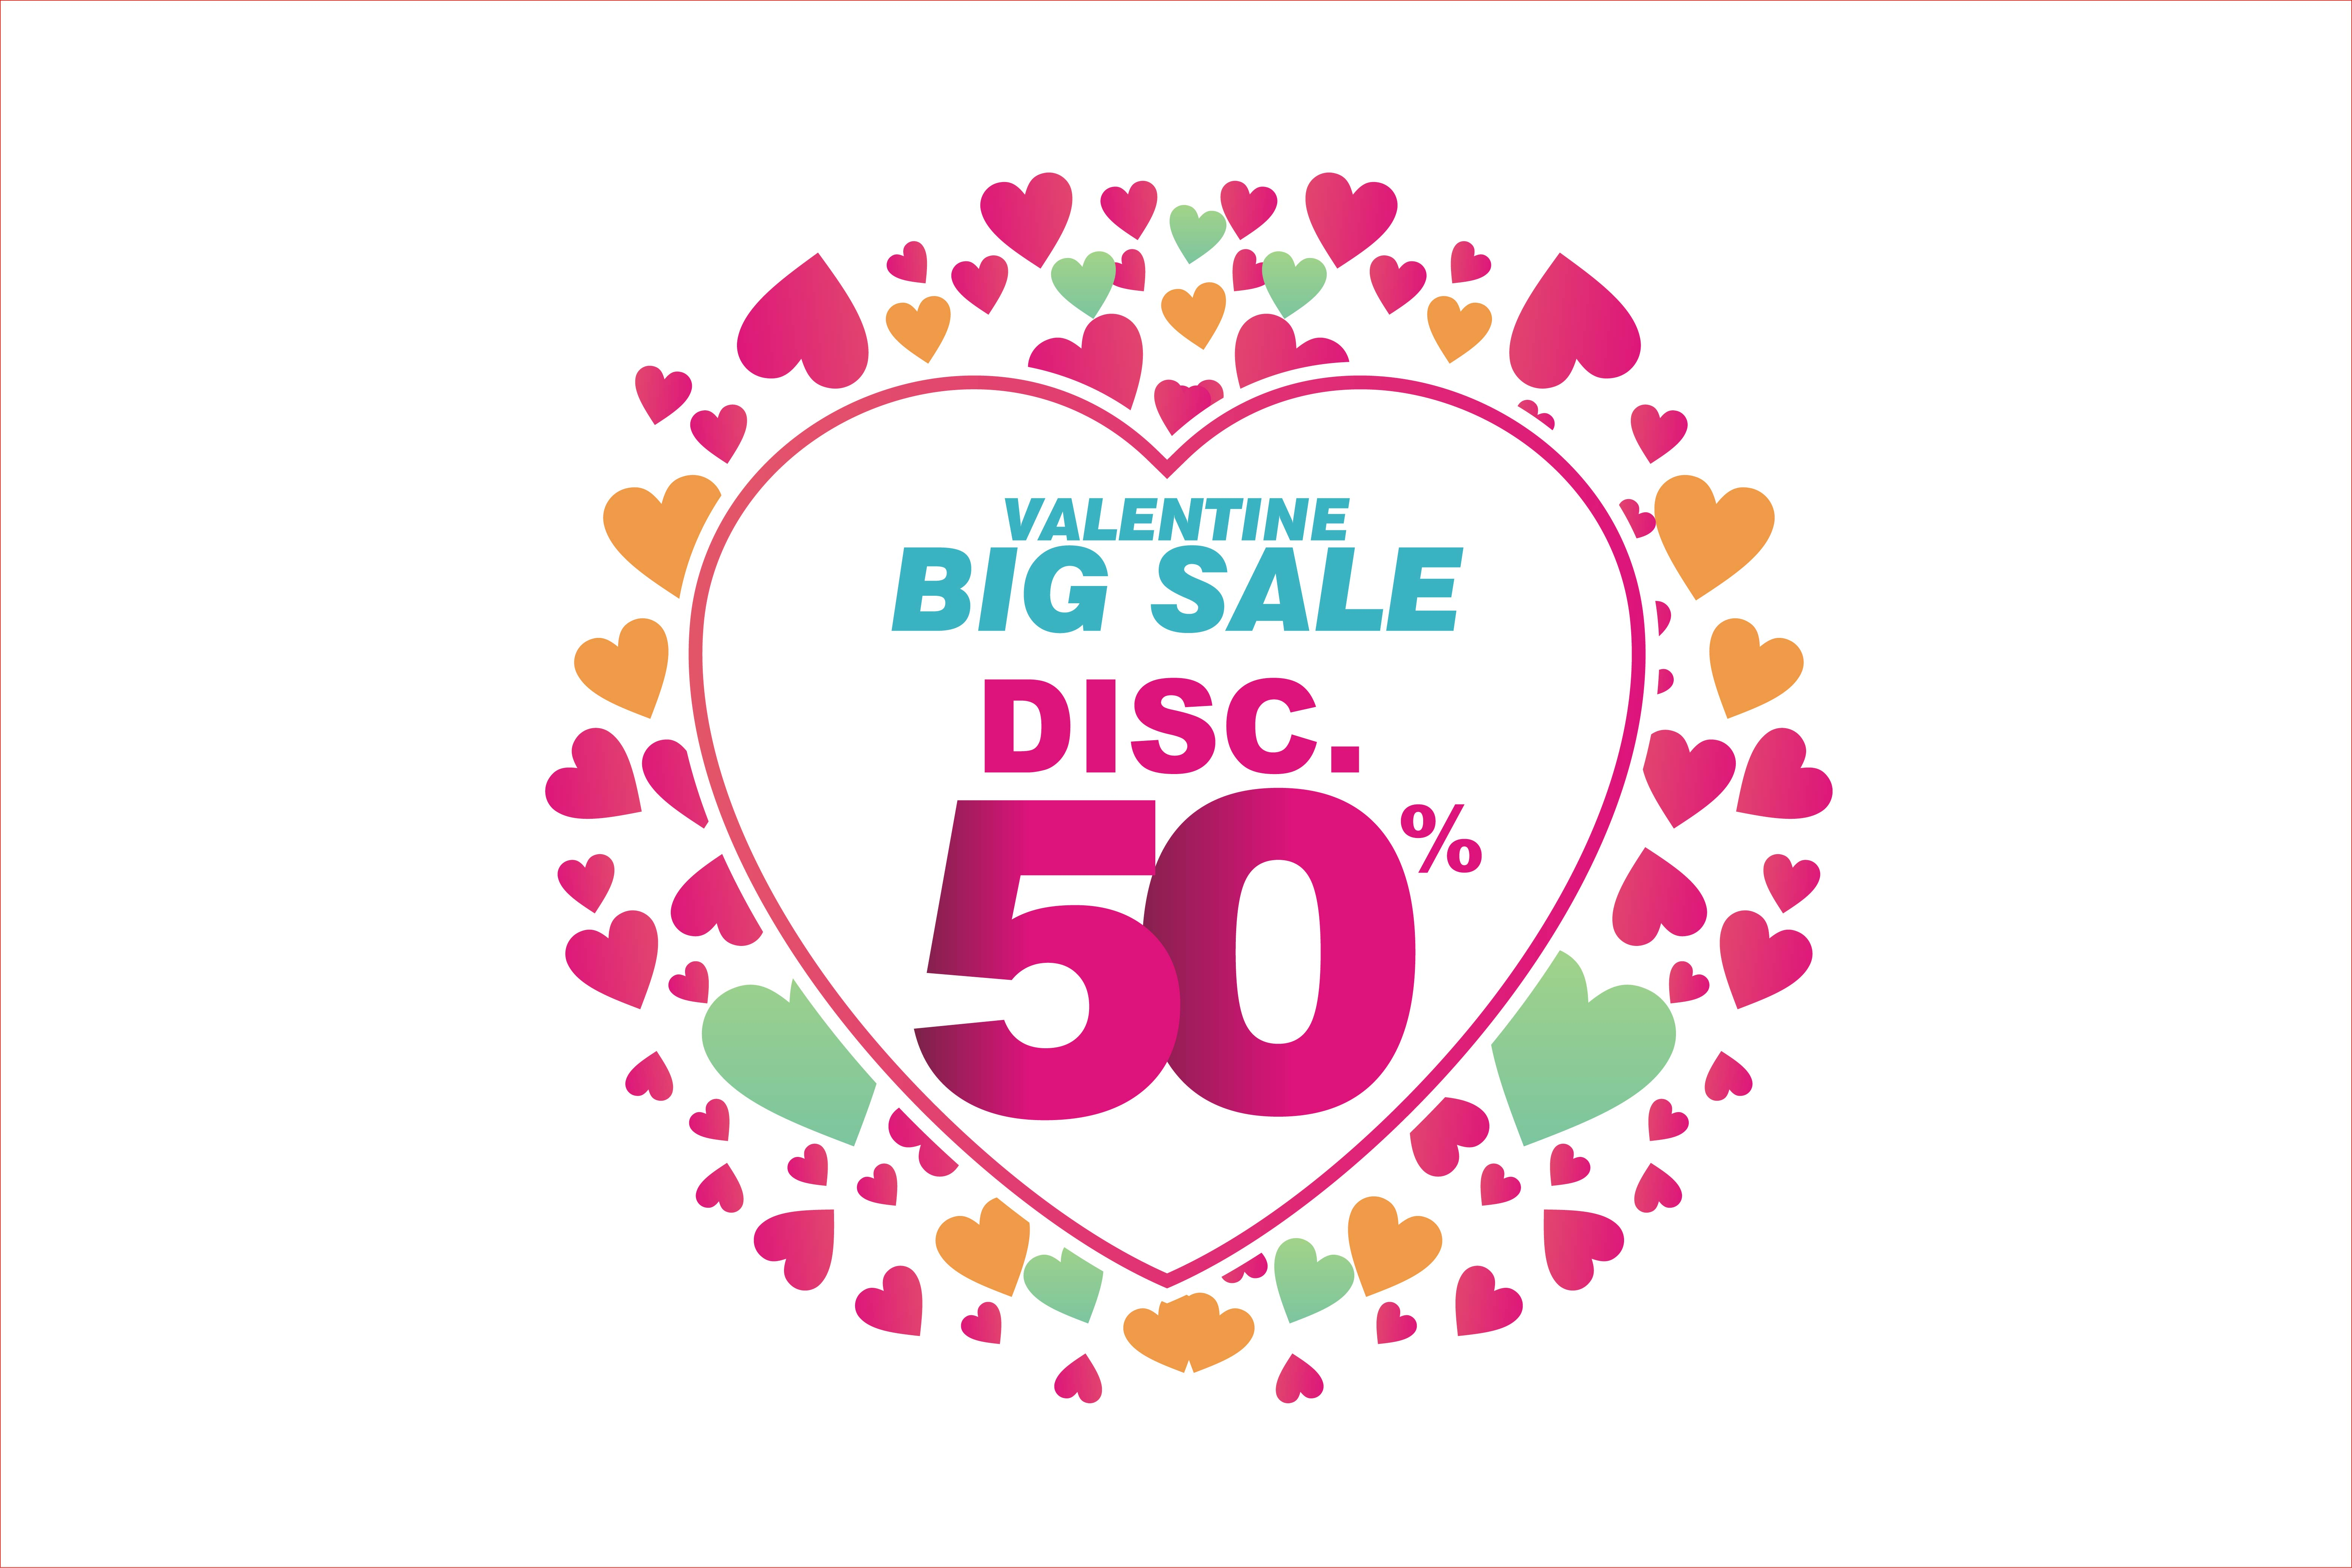 Download Free Badge Of Valentine Sale Discount Graphic By Edywiyonopp for Cricut Explore, Silhouette and other cutting machines.